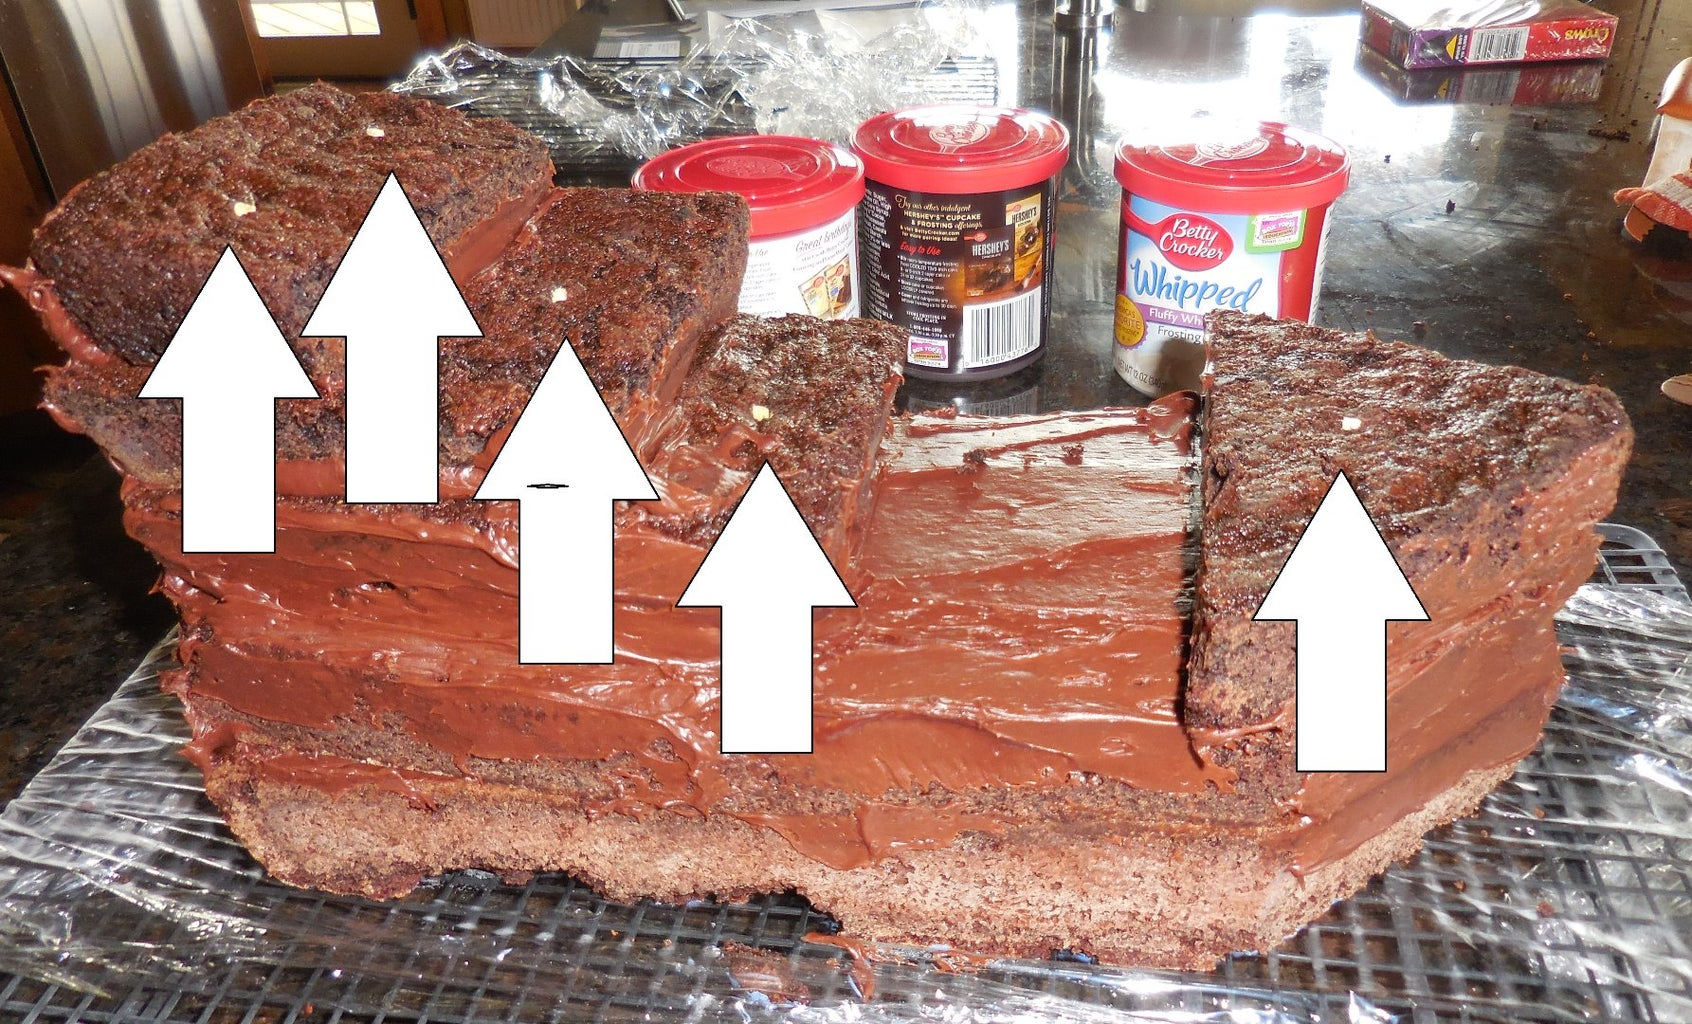 Add Pegs for Support and Crumb Coat the Cake